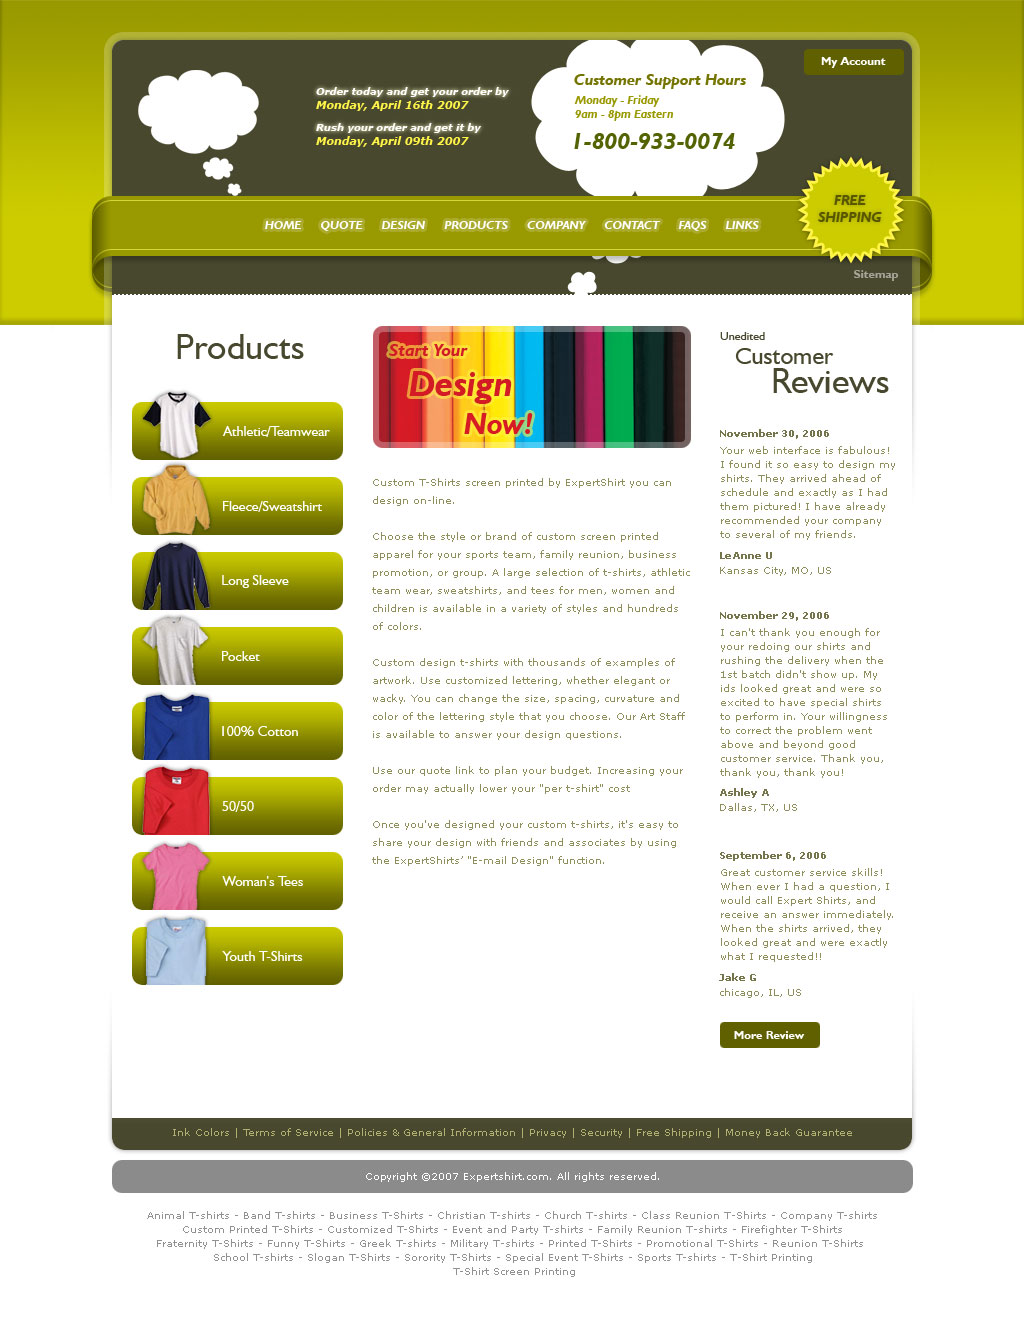 Website design 2 by evomaya designs interfaces web interfaces a design